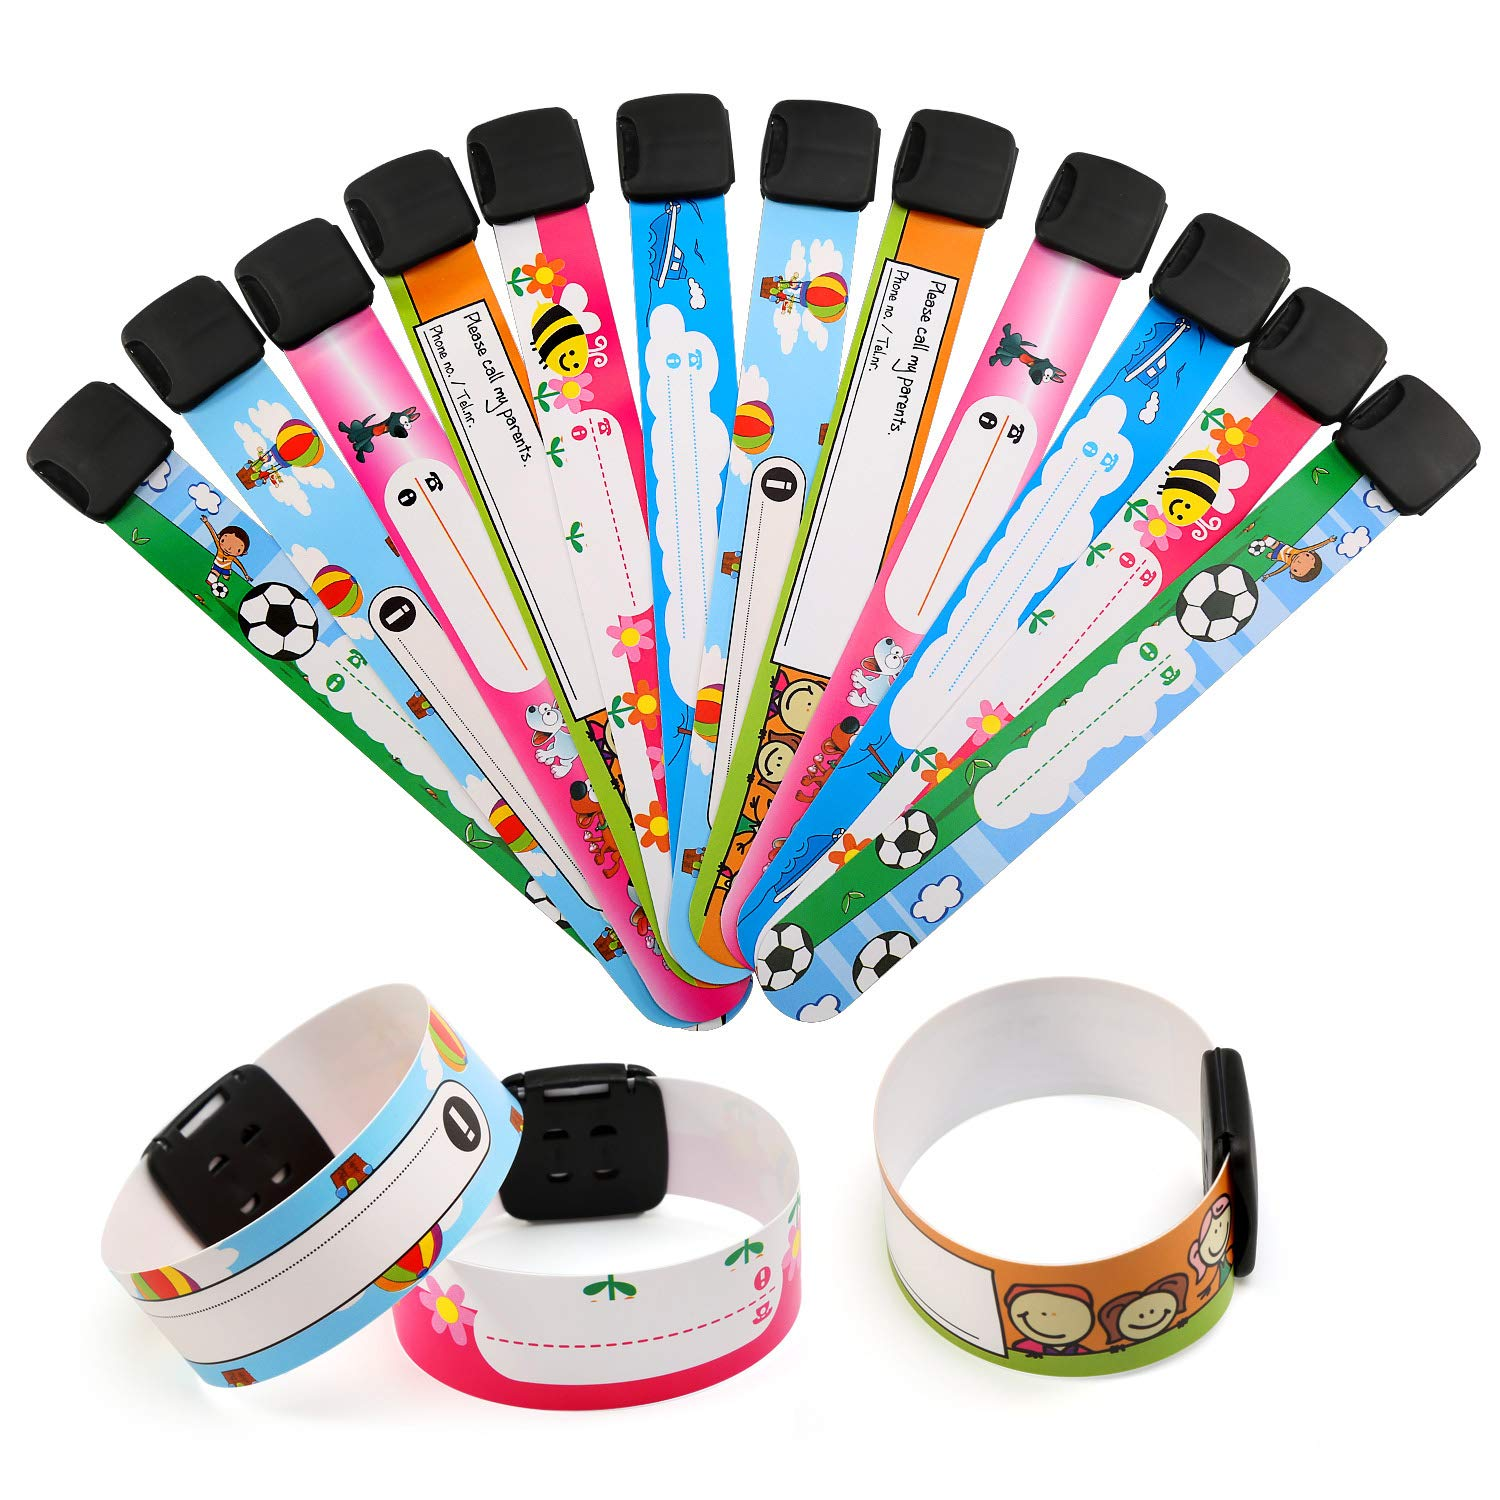 12Pcs Waterproof Name Emergency Wrist Bands Labeling SOS ID Bracelet Wristbands for Children Boys and Girls Ballery Safety ID Wristband for Kids